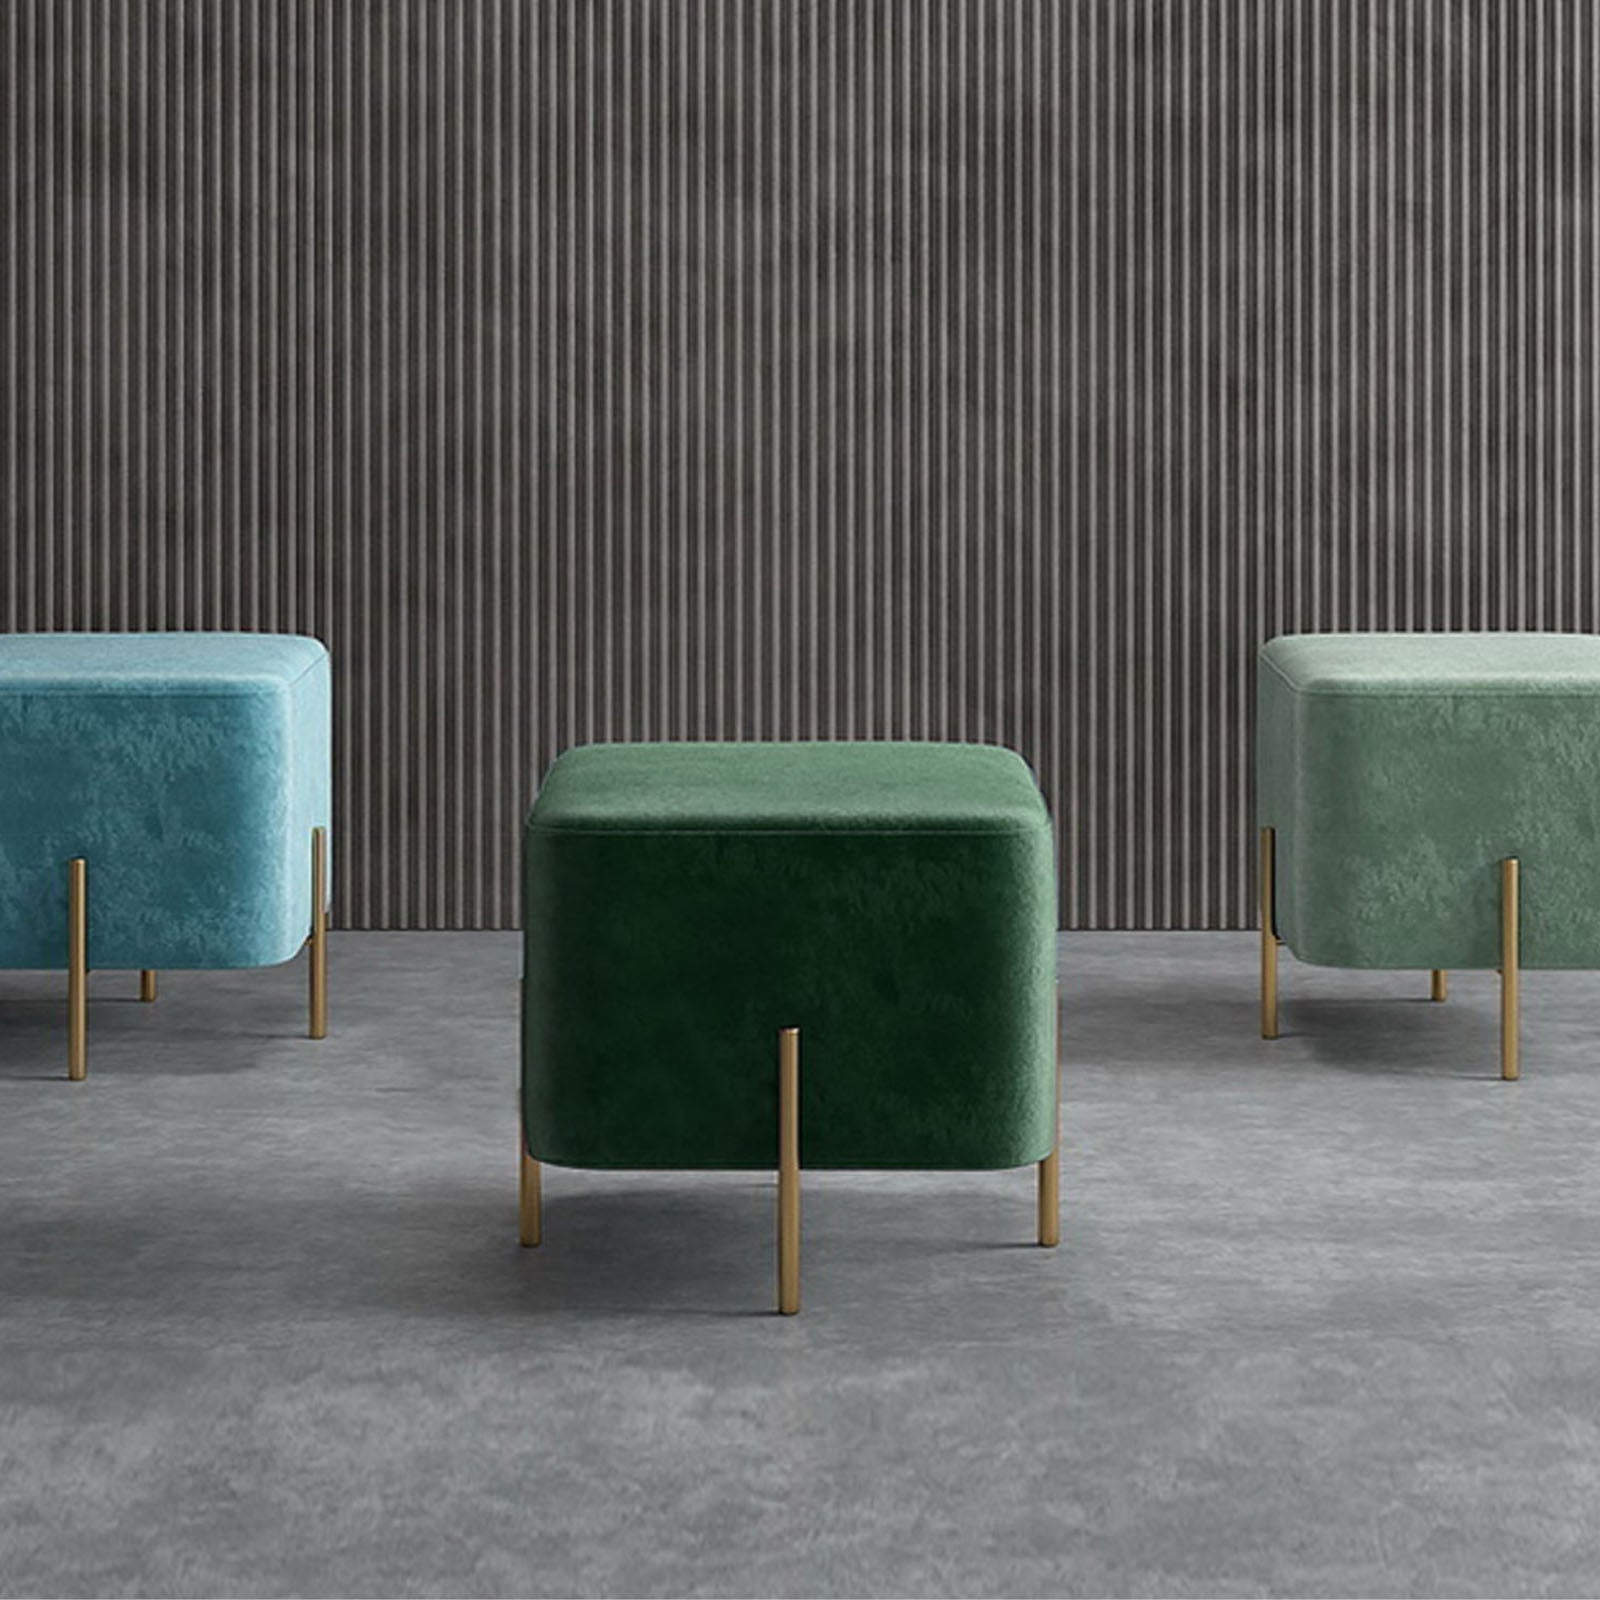 Gela  Stool TG-229-GREEN